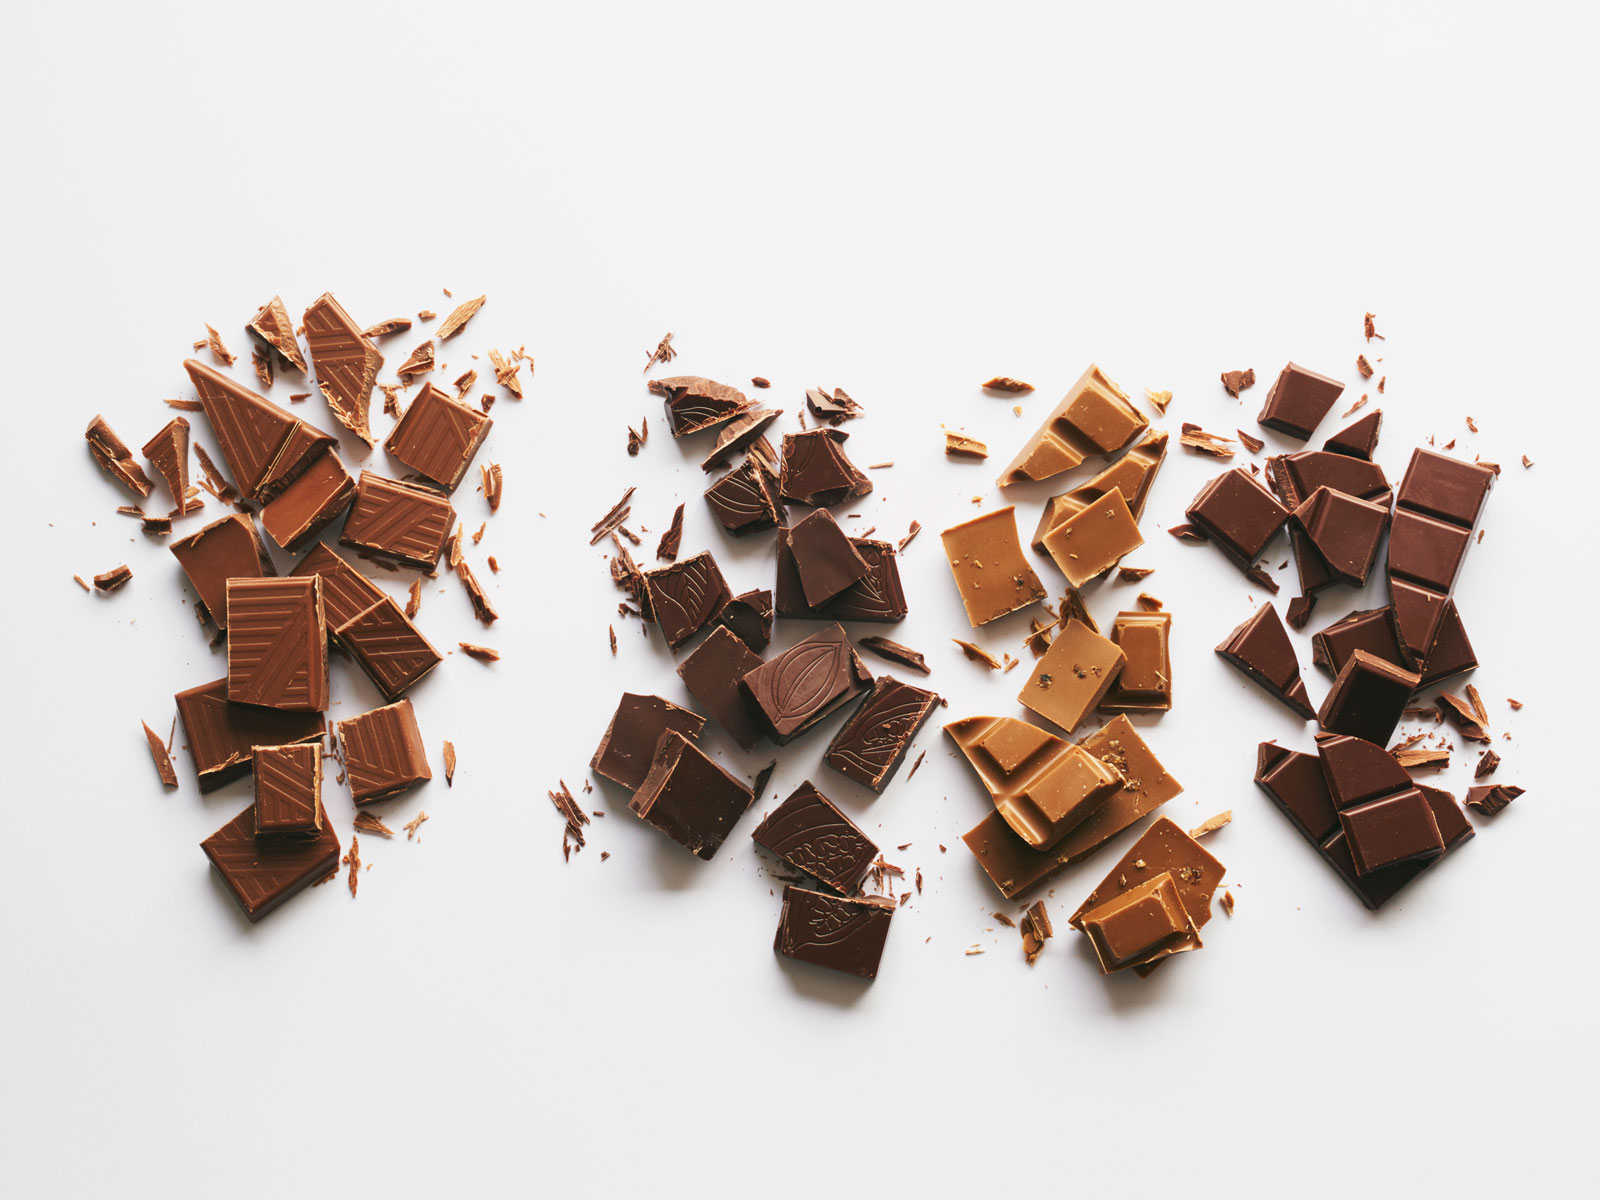 Milk Chocolate Is Finally Getting the Respect It Deserves